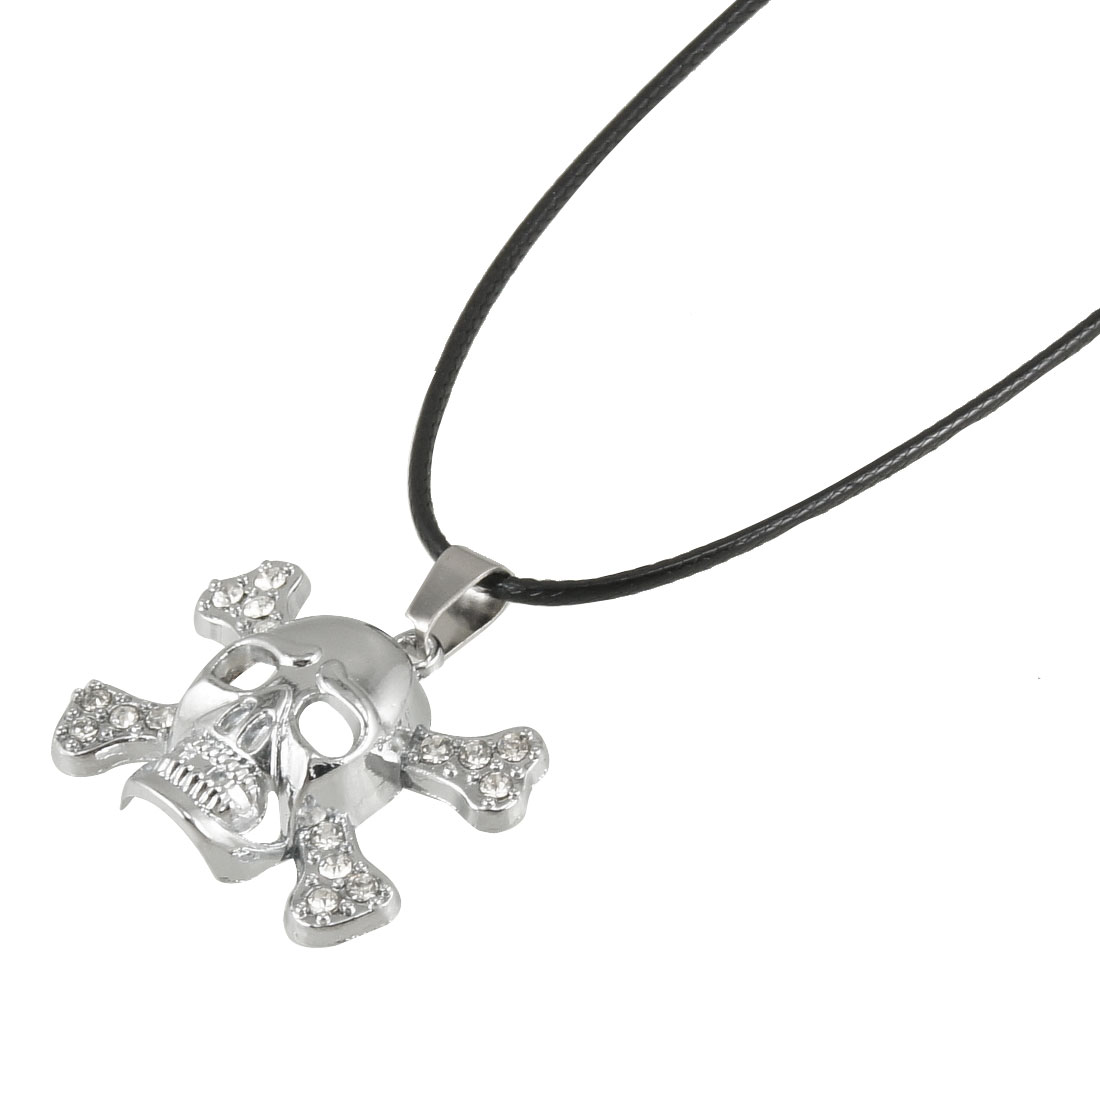 Rhinestone Decor Silver Tone Skull Crossbones Pendant Black Strap Necklace